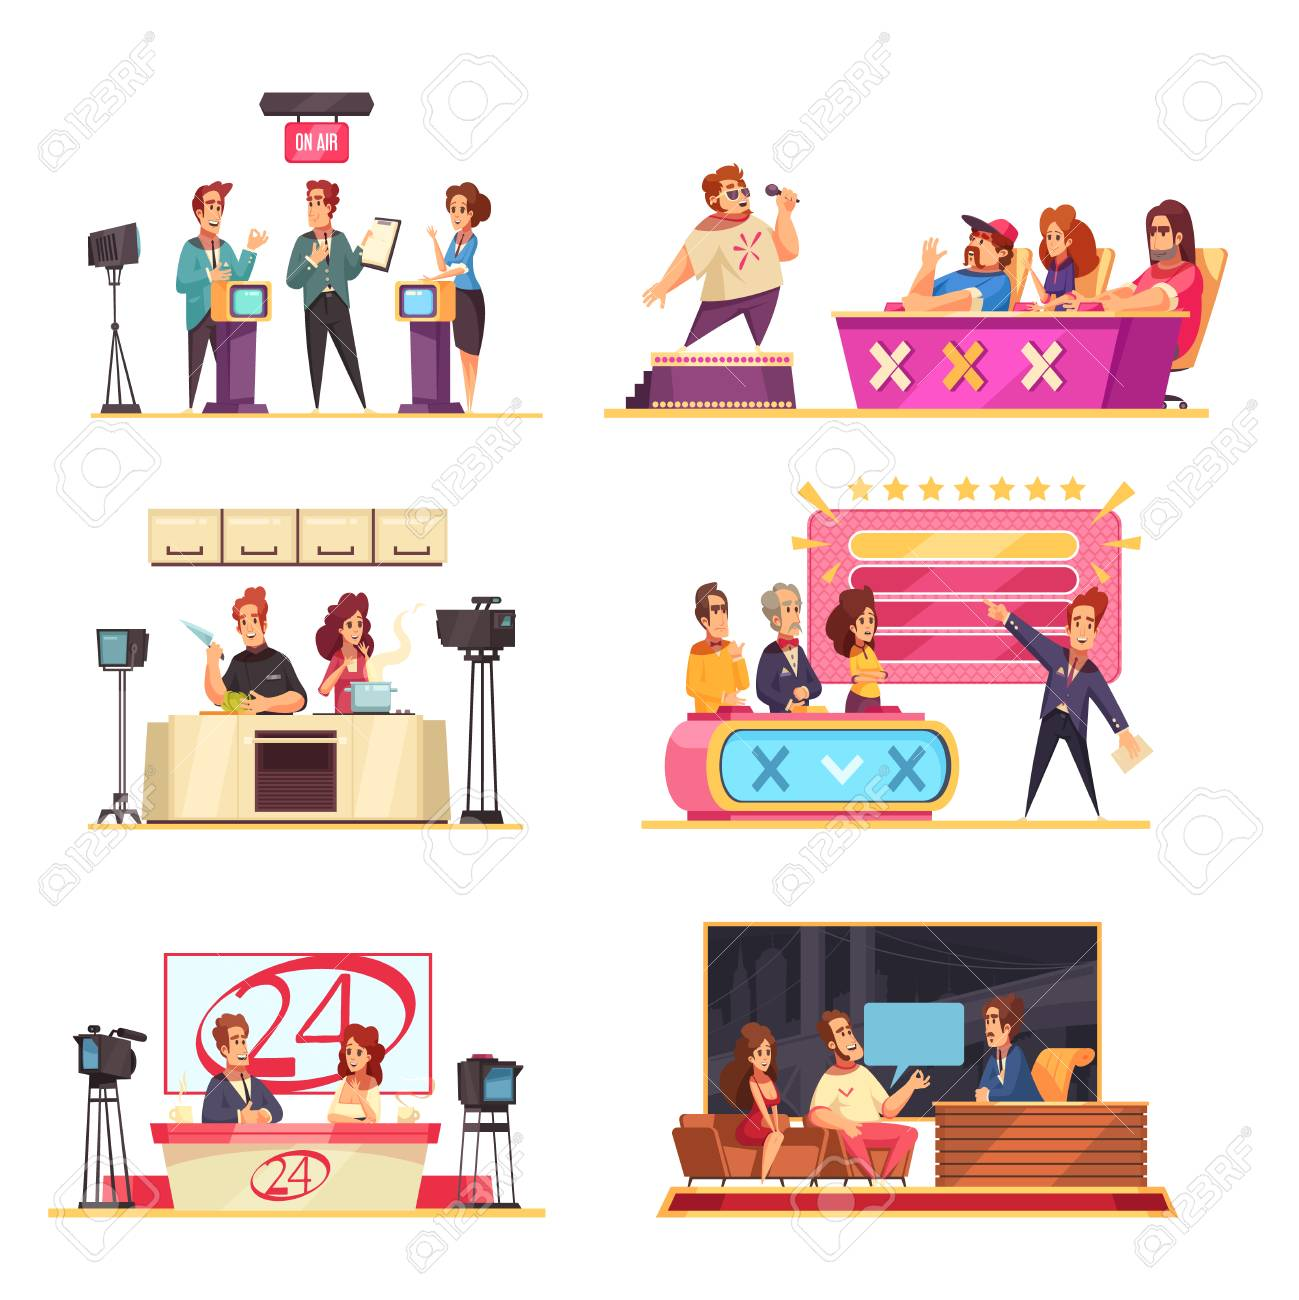 Television game show 6 cartoon compositions with hosts contestants solving puzzles answering questions singer jury vector illustration - 123522979